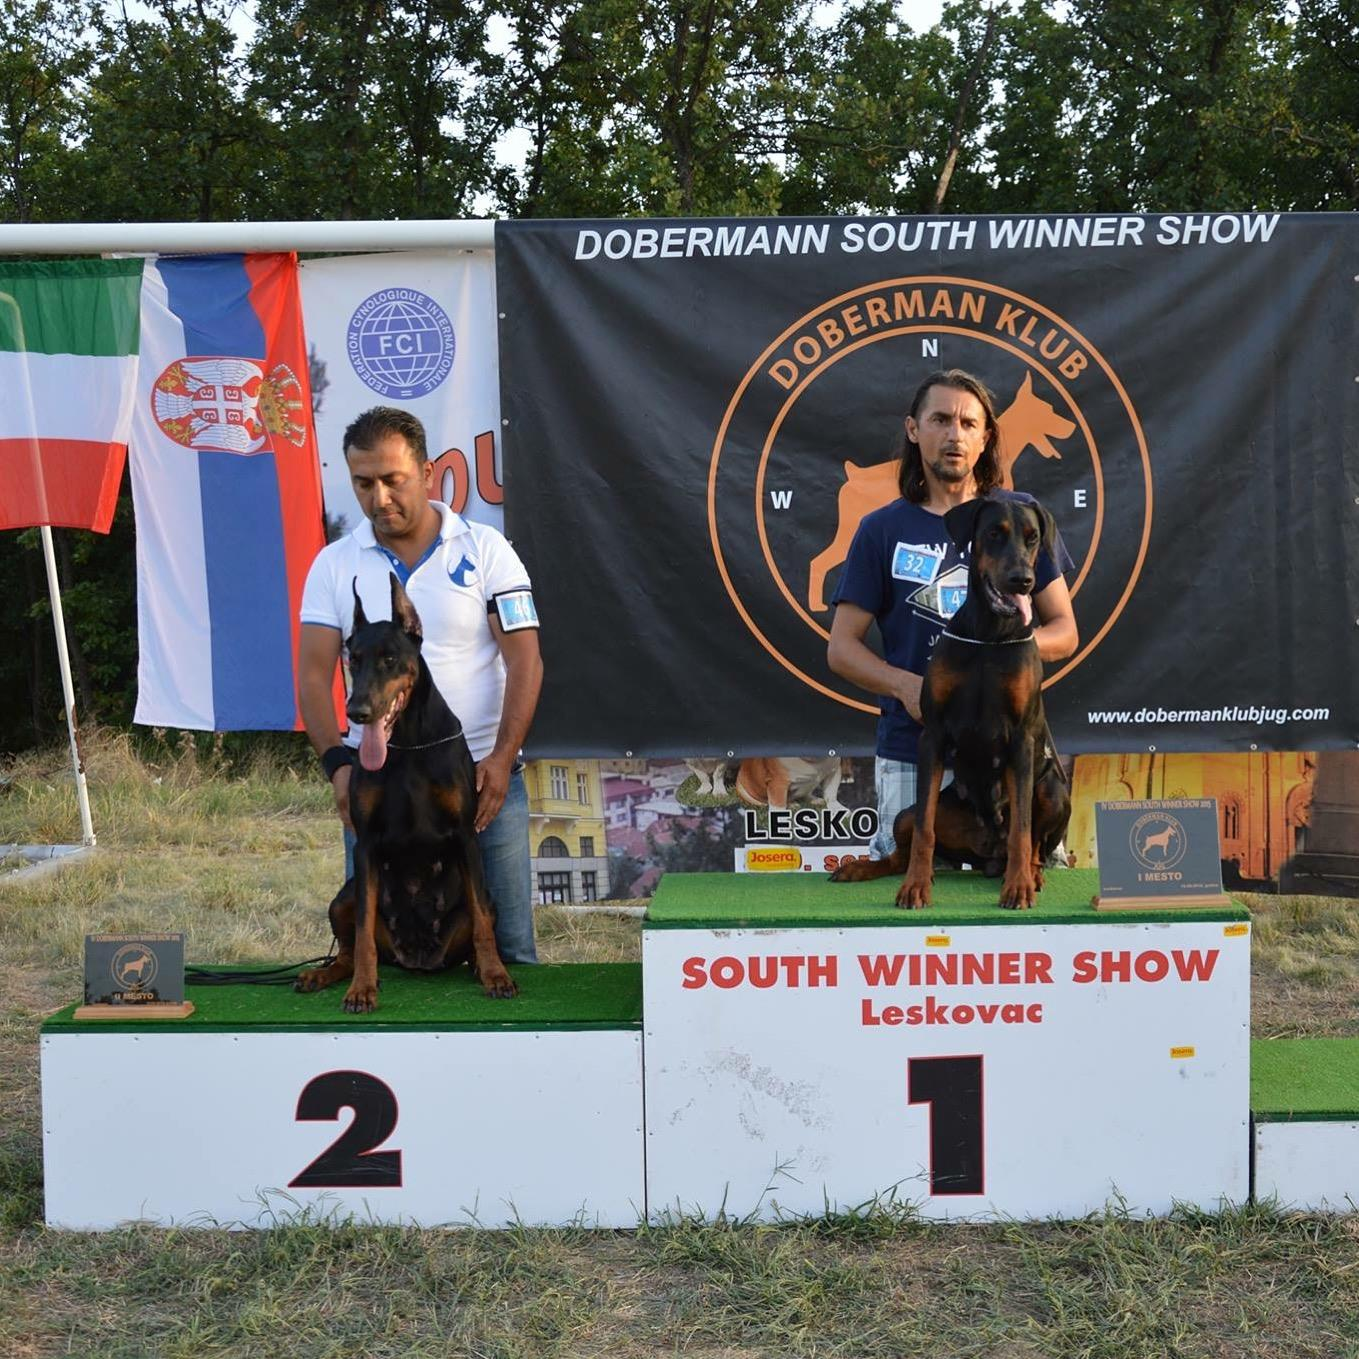 Knights of Night Doberman  SIRBISTAN LESKOVAC DOBERMAN KLUP SHOW 2.